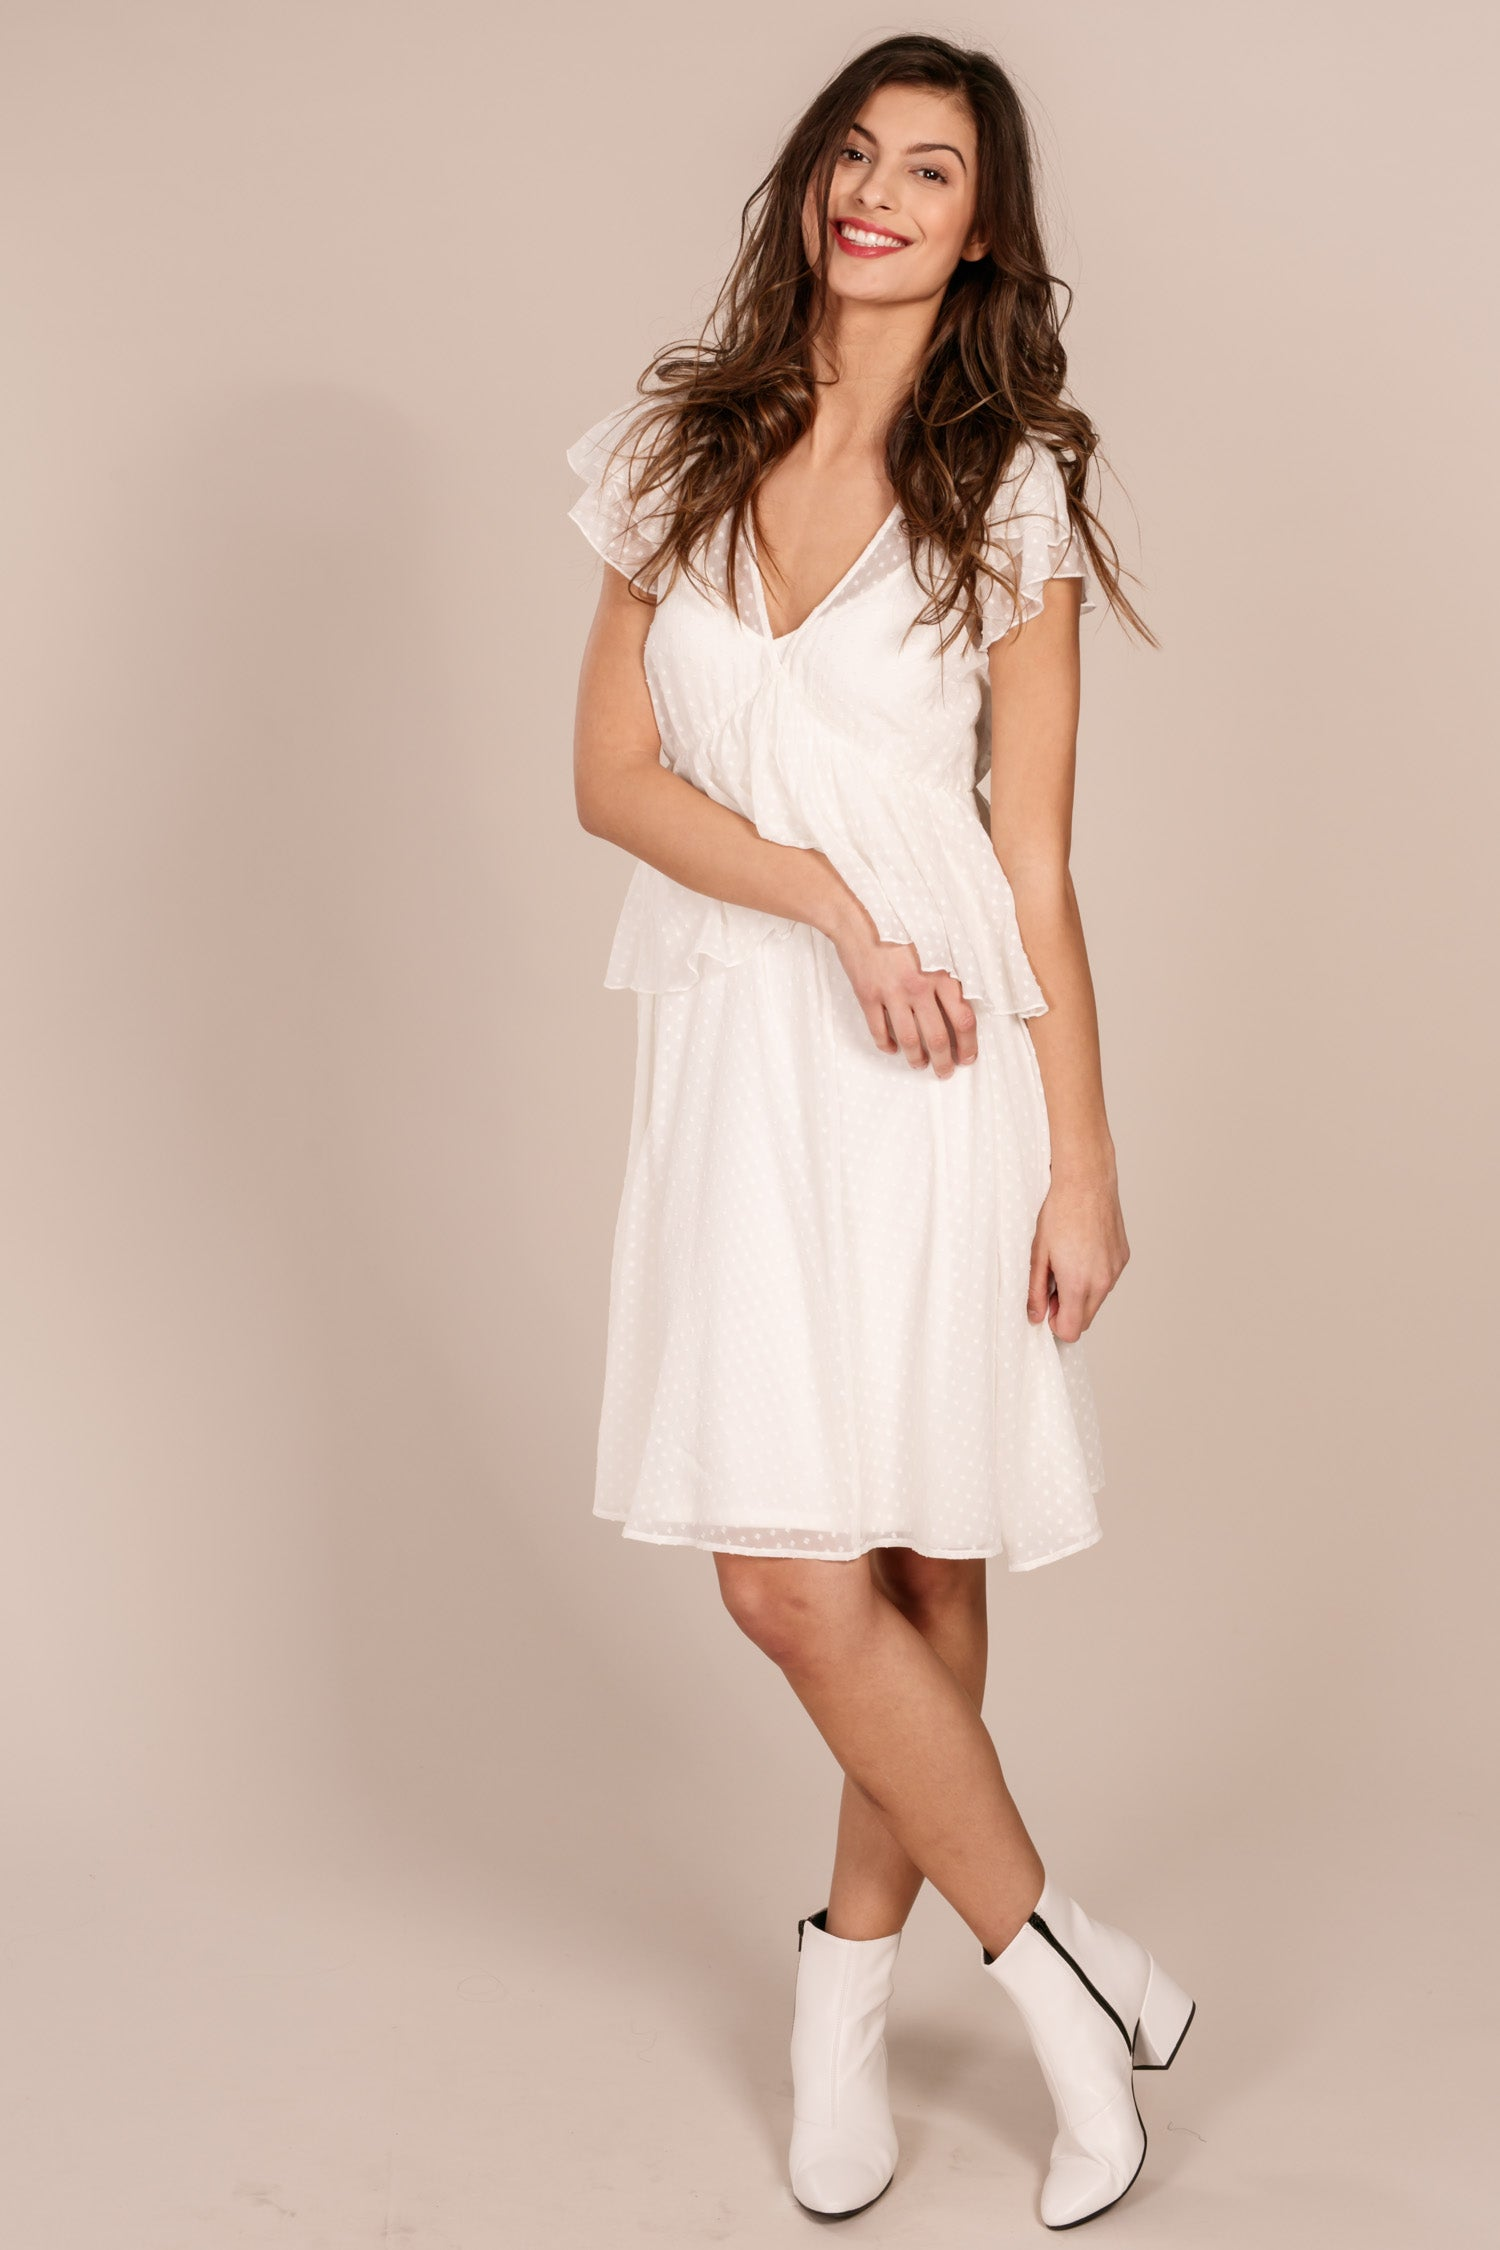 Dottie peplum dress - Offwhite